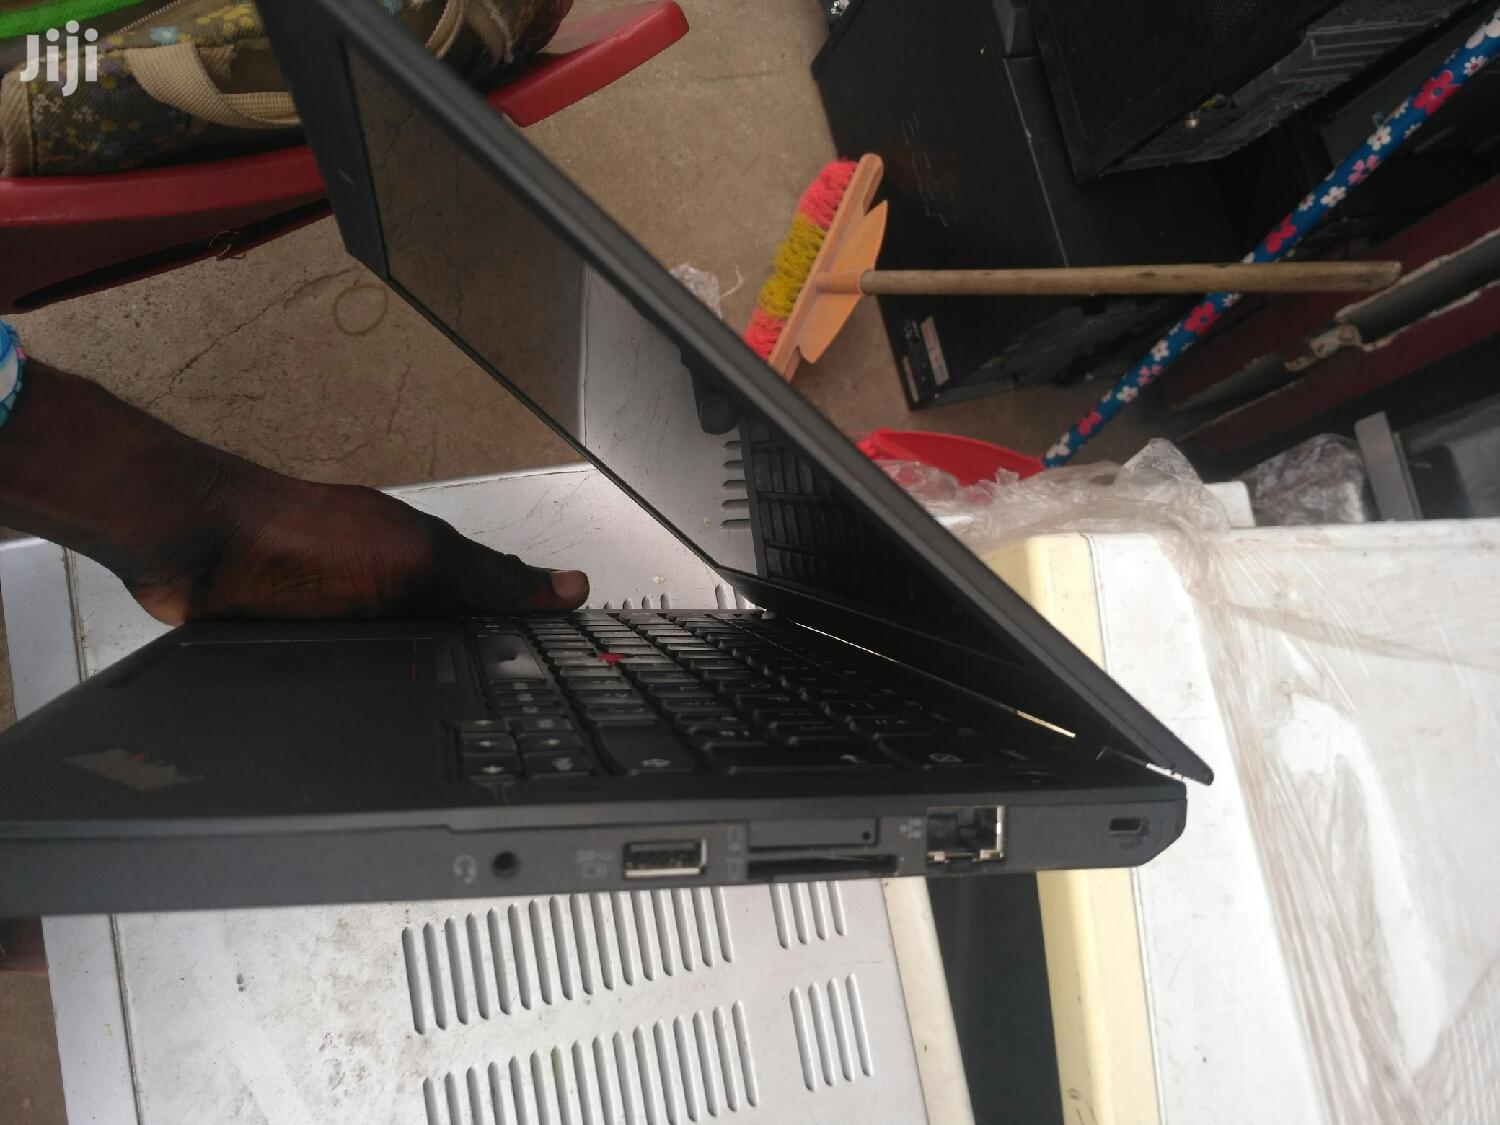 Laptop Lenovo ThinkPad X240 4GB Intel Core I5 HDD 500GB   Laptops & Computers for sale in Accra Metropolitan, Greater Accra, Ghana